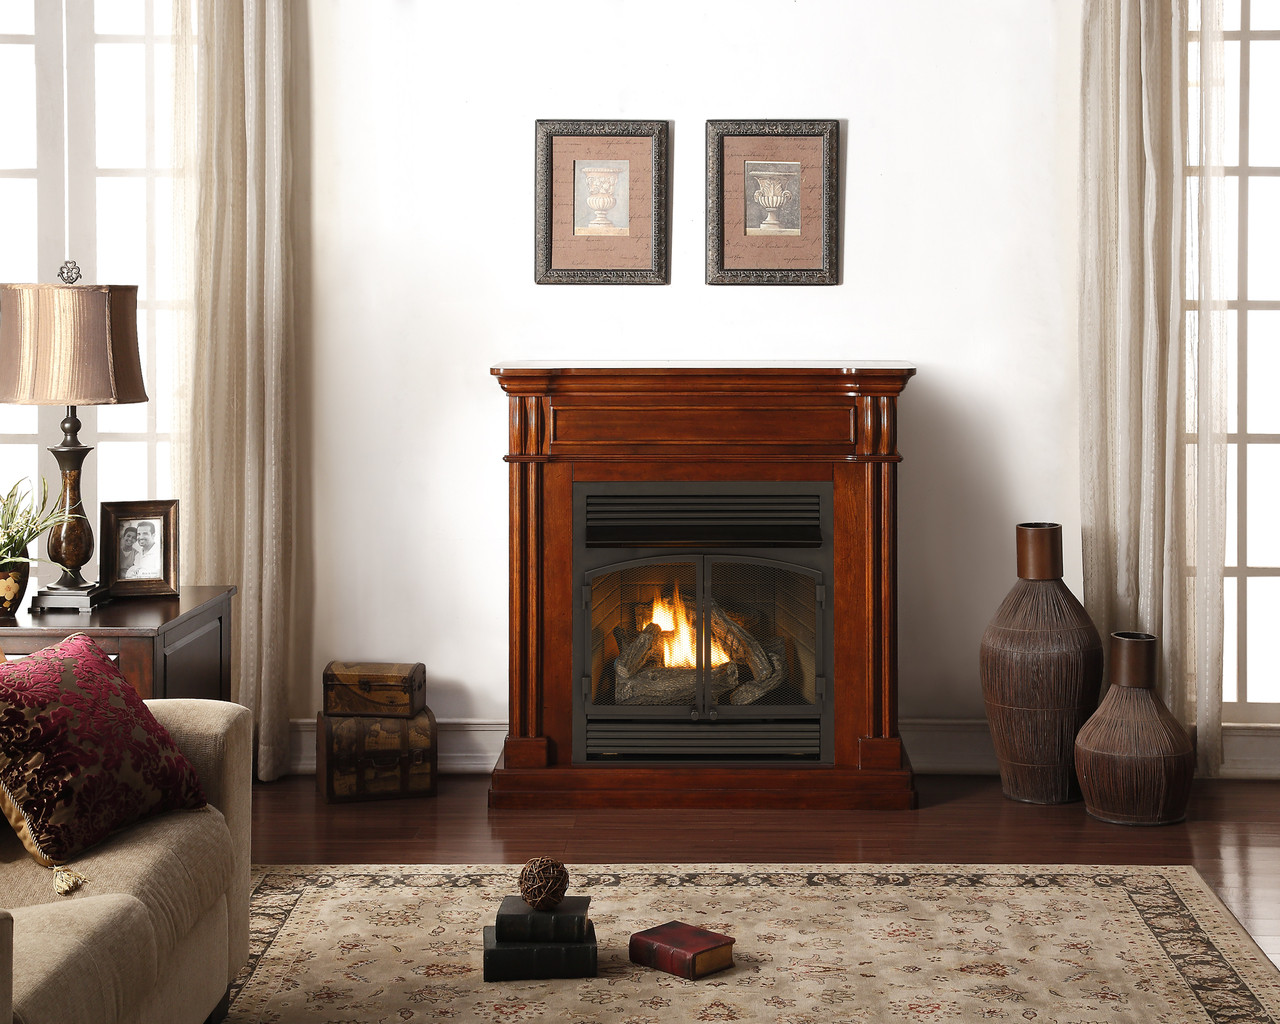 Duluth Forge Dual Fuel Ventless Gas Fireplace 32 000 Btu T Stat